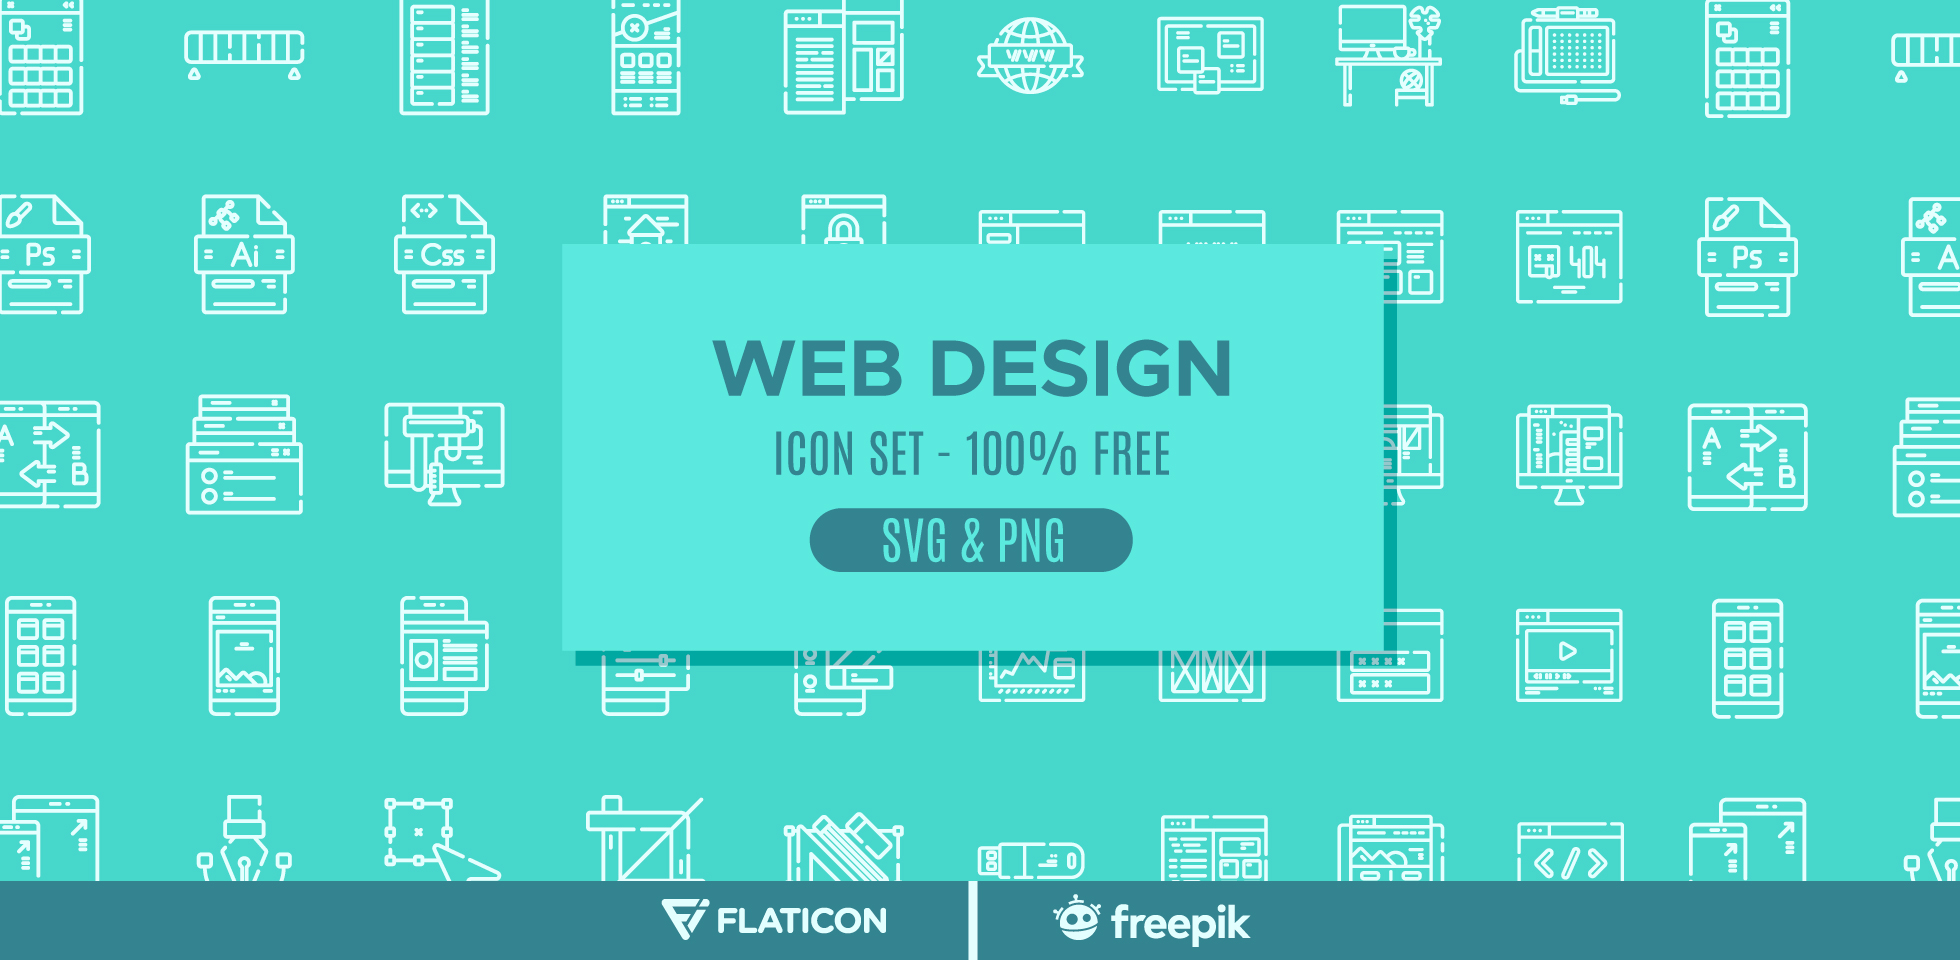 Free Download: Web Design Icon Pack